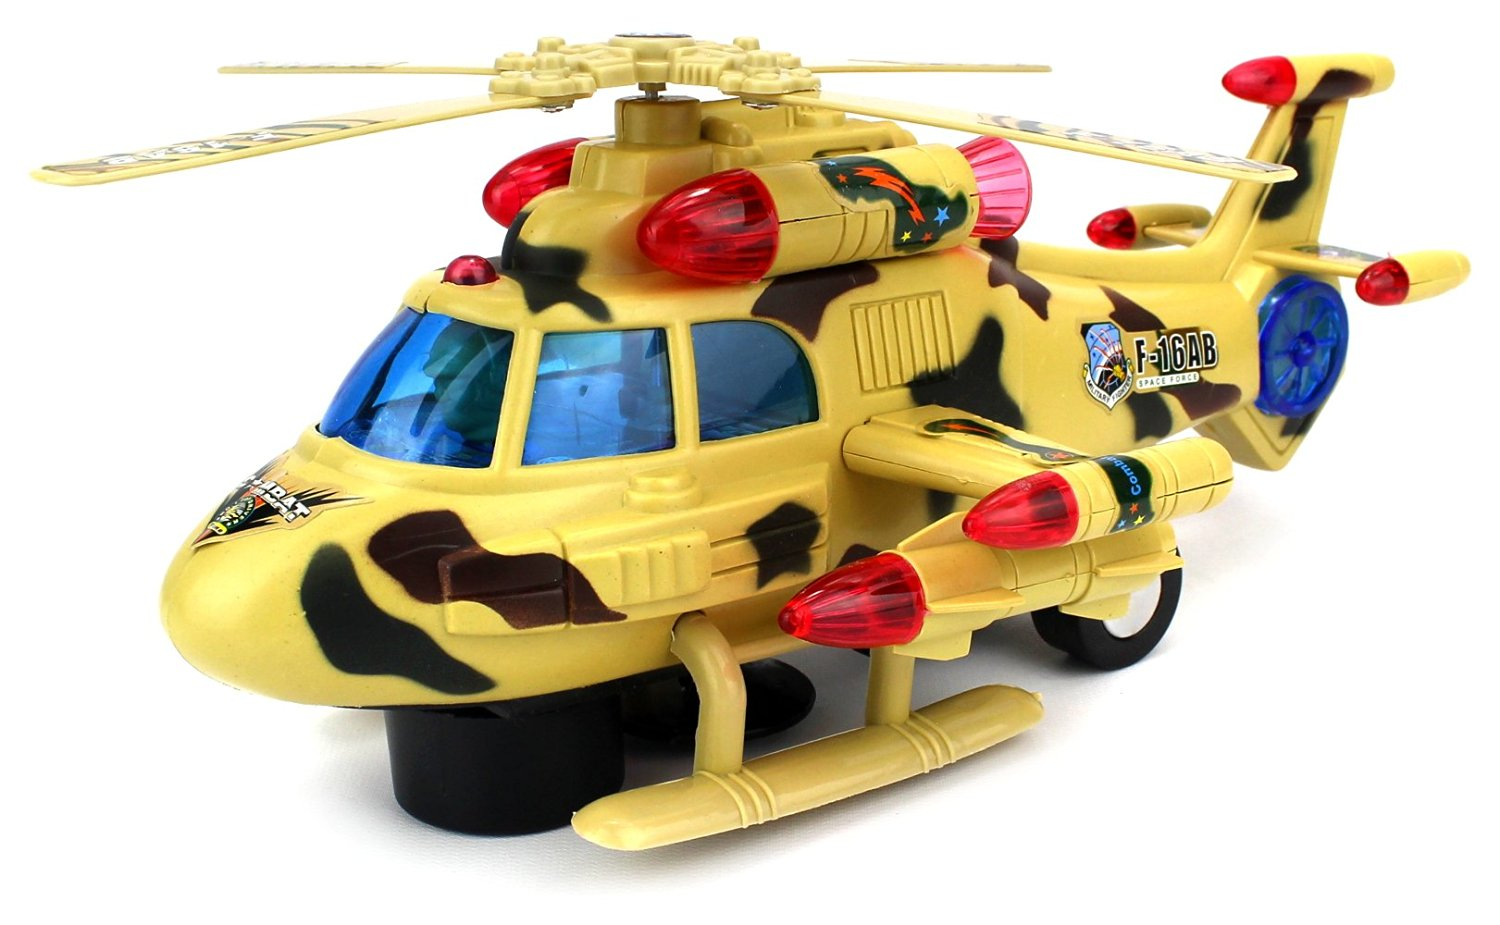 Velocity Toys Sky Pilot Battery Operated Bump and Go Toy Helicopter w  Flashing Lights,... by Velocity Toys